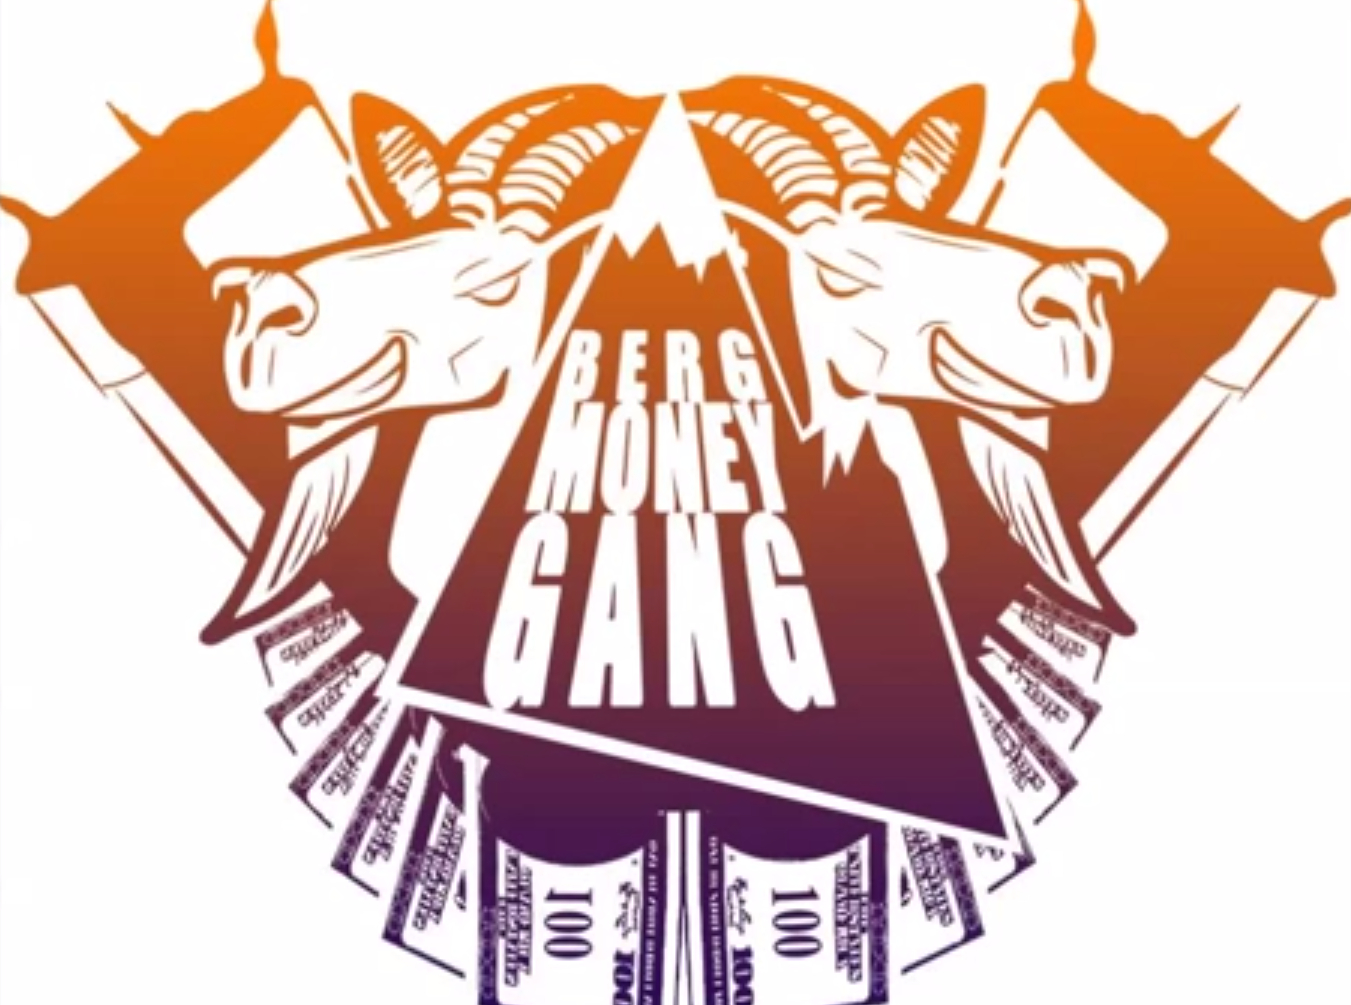 berg-money-gang